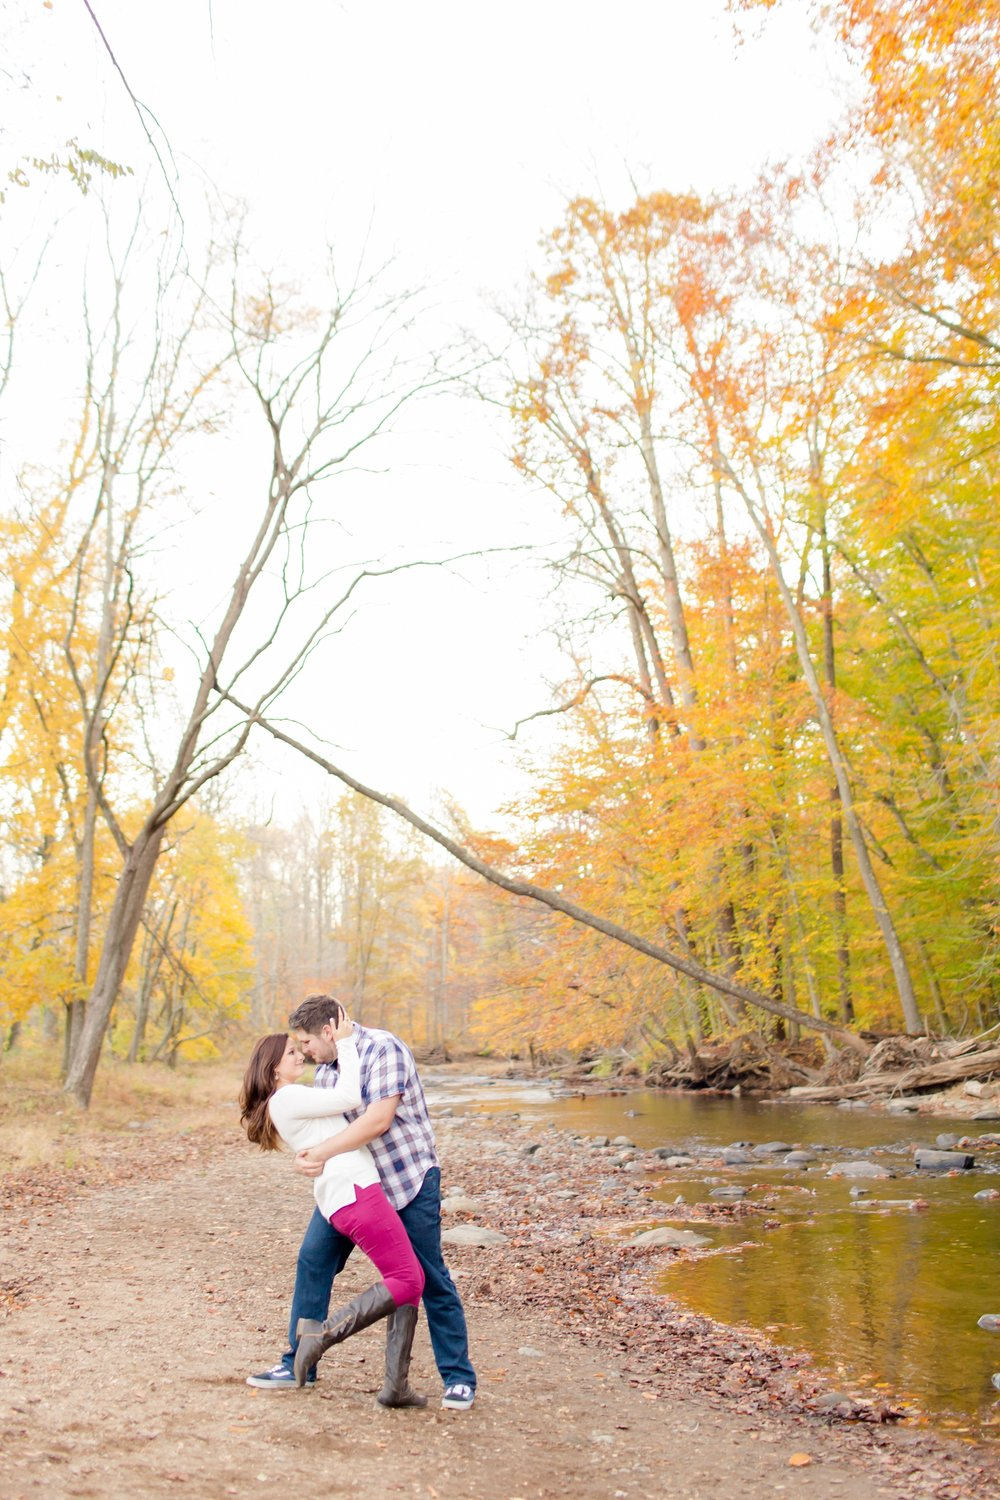 Rebecca & Greg Engagement-183_anna grace photography baltimore maryland engagement photographer jerusalem mill engagementphoto.jpg